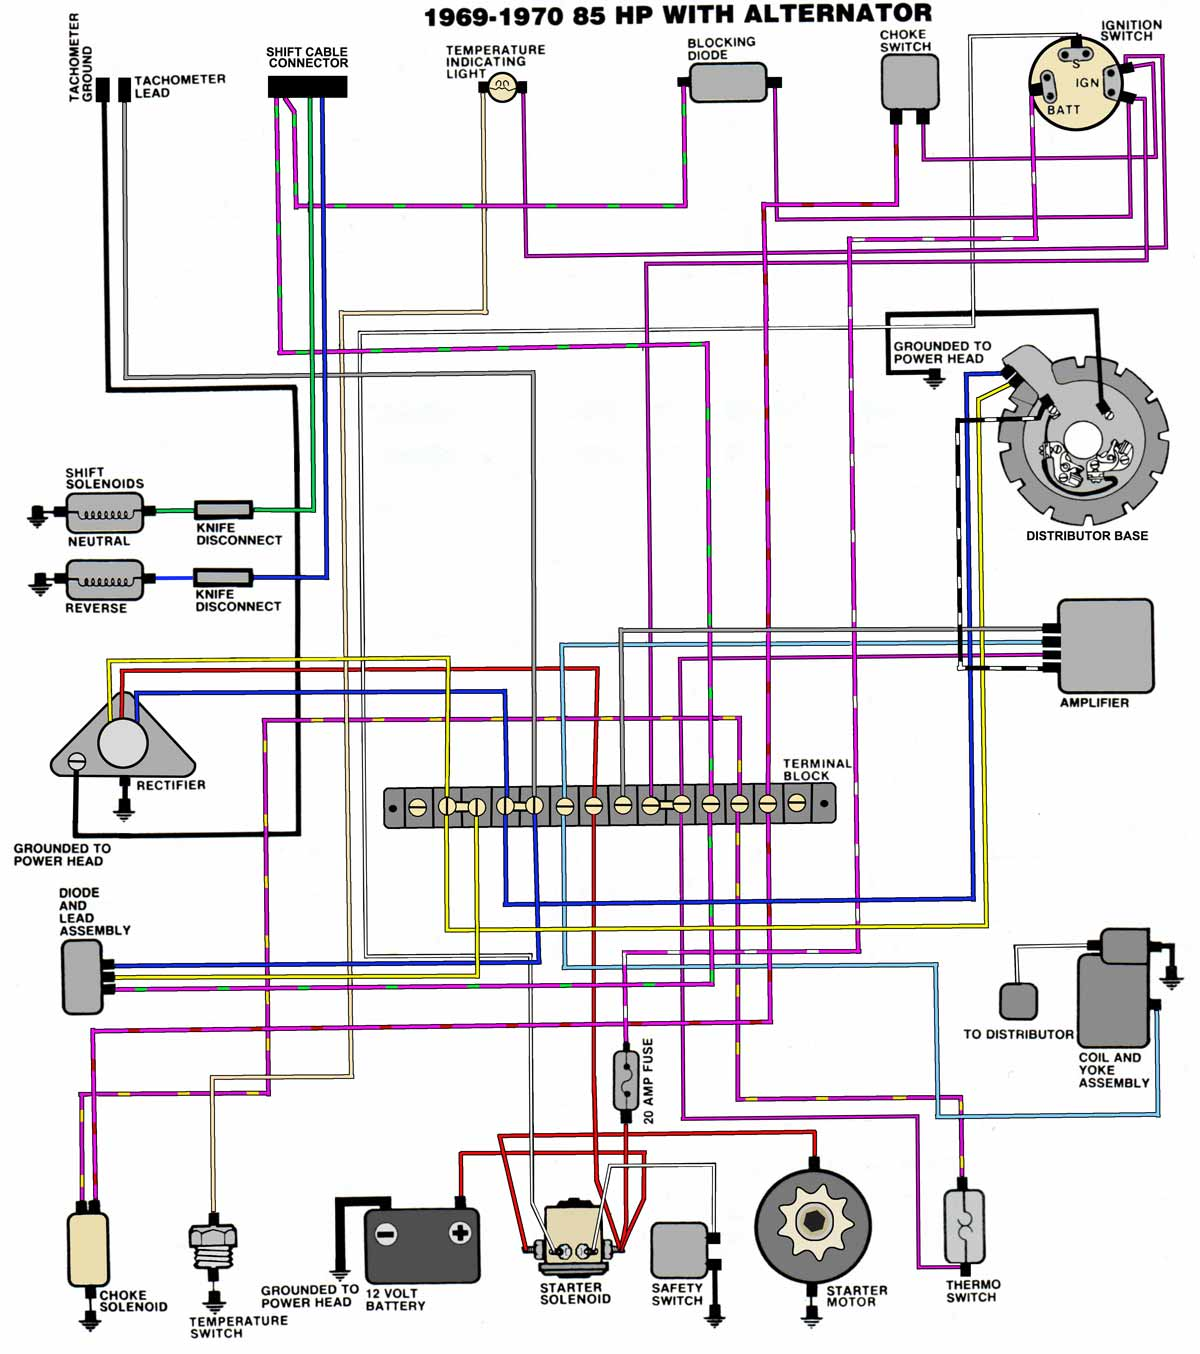 hight resolution of mercury 85 hp wiring diagram simple wiring diagram rh 71 mara cujas de mercury force 70 hp wiring diagram mercury force 70 hp wiring diagram